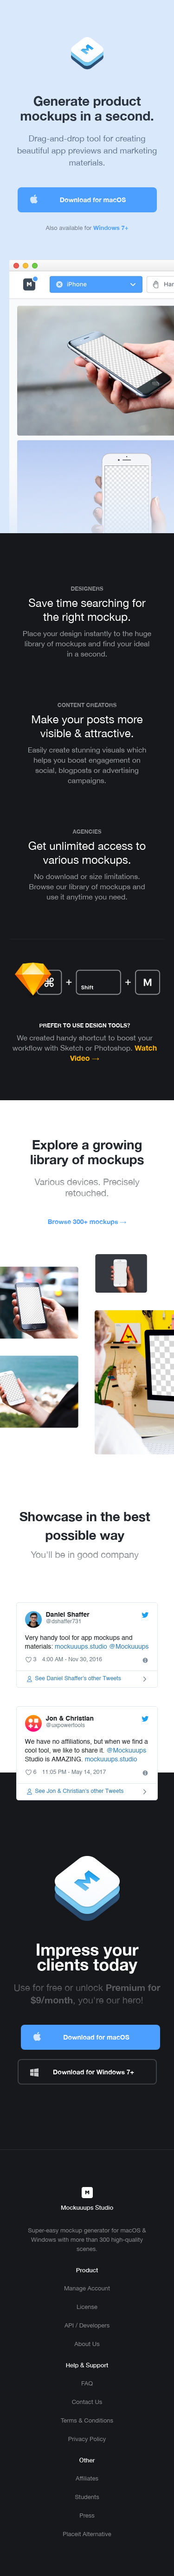 Example of Design for Computers & Electronics, Software, Mobile Landing Page by mockuuups.studio | Mobile Landing Page Design